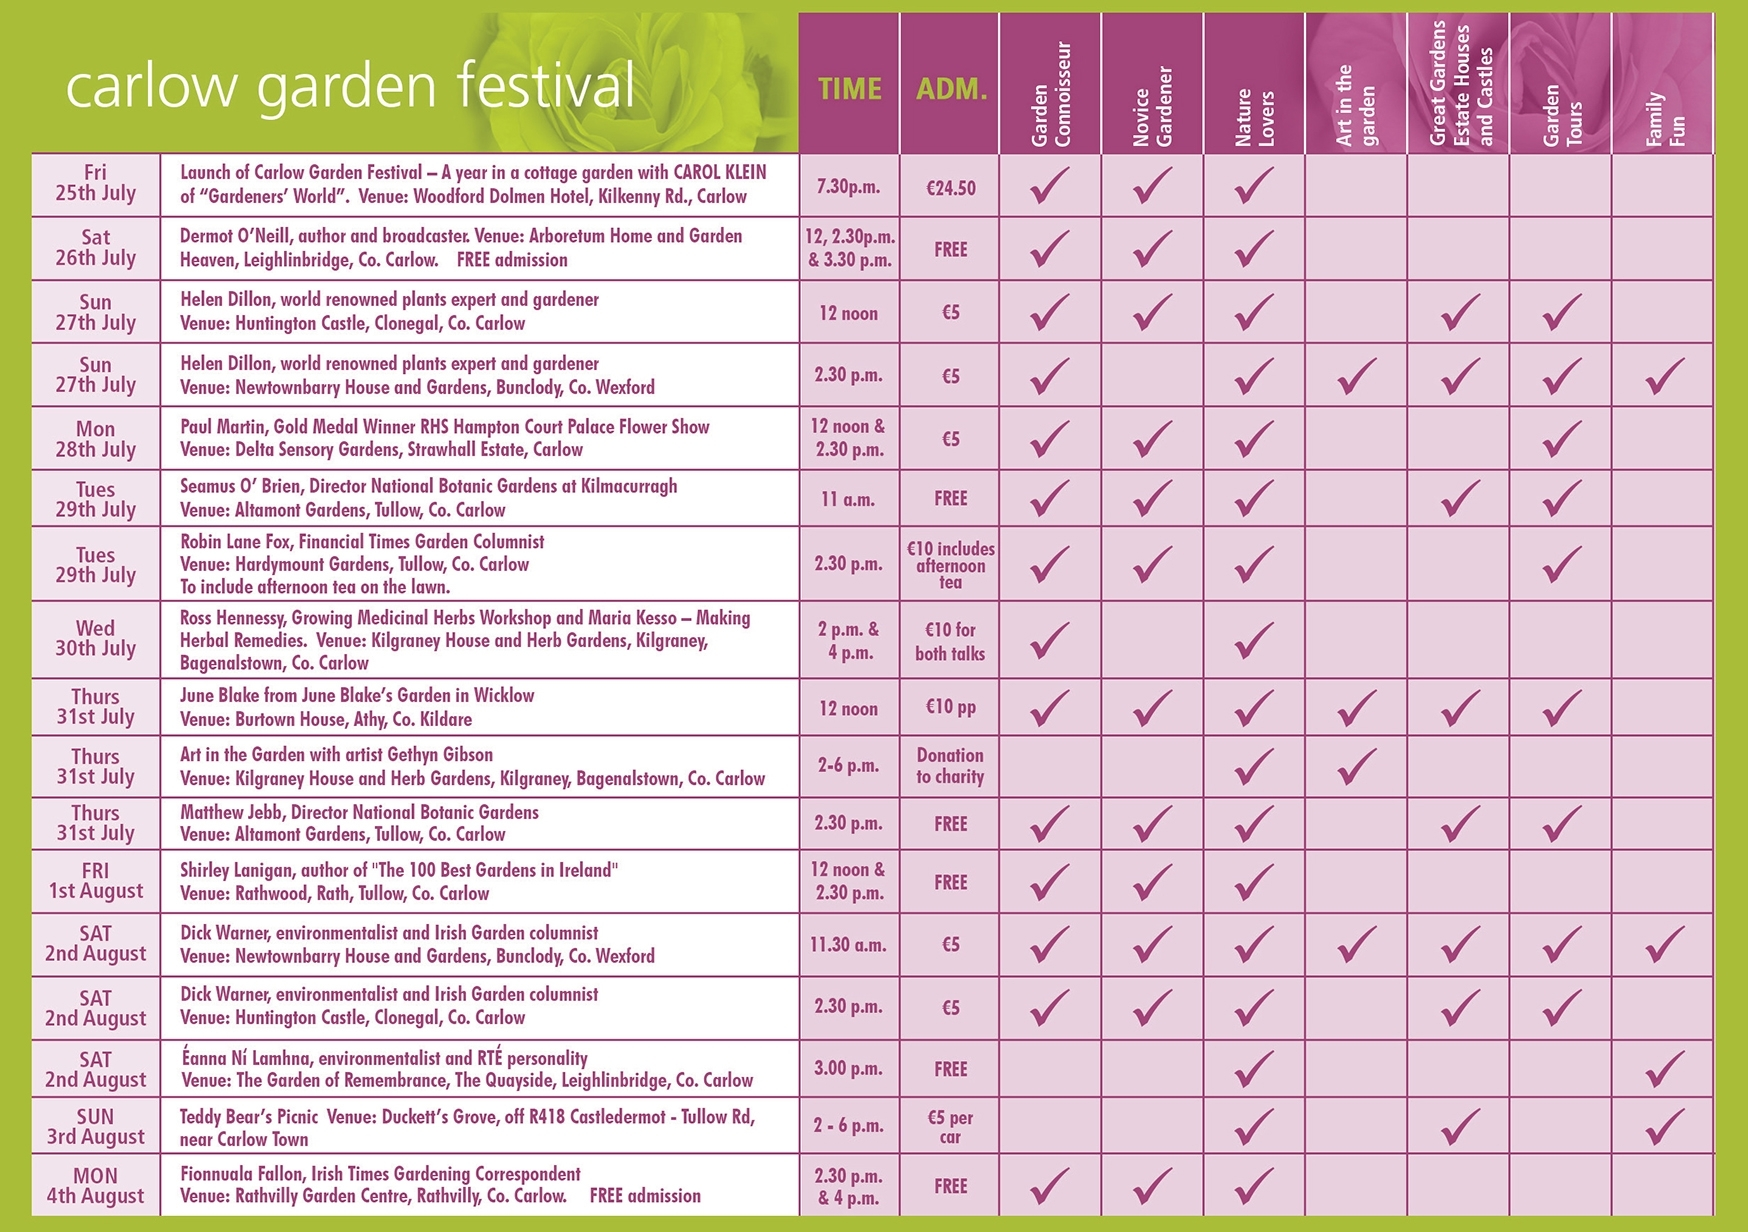 Carlow Garden Festival 25th July to 4th August 2014